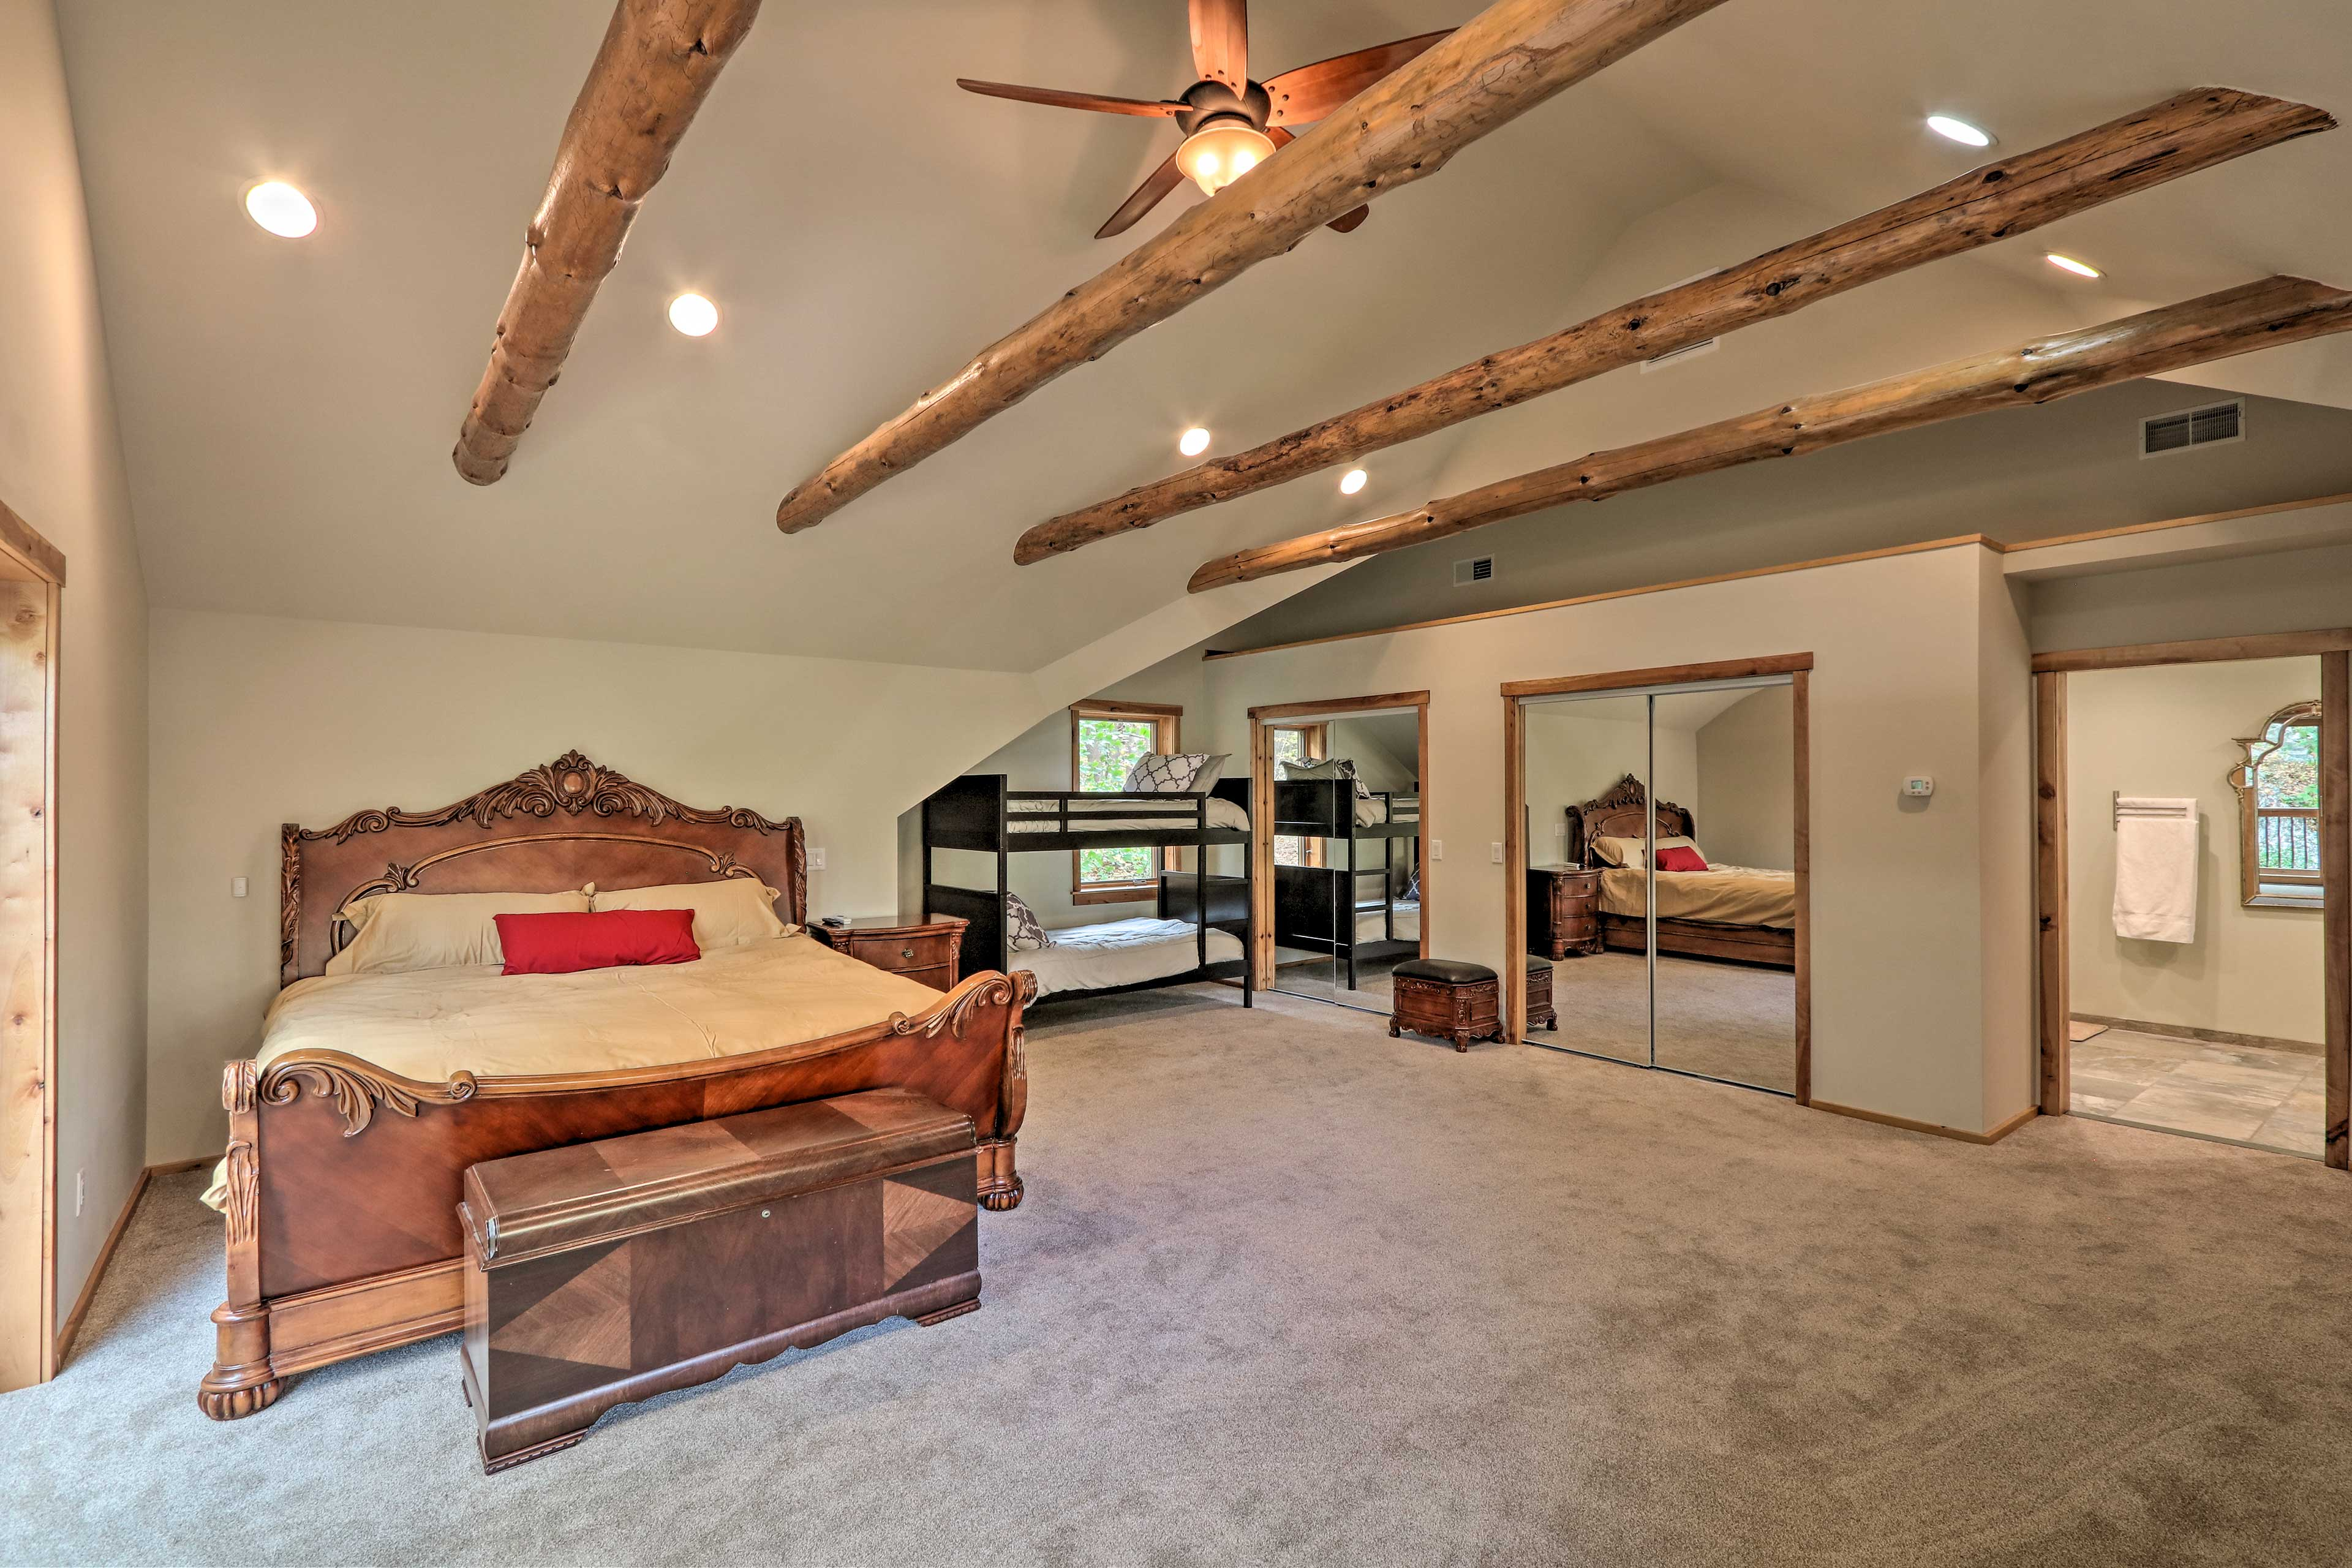 This spacious bedroom features a king bed, plus a twin bunk bed.